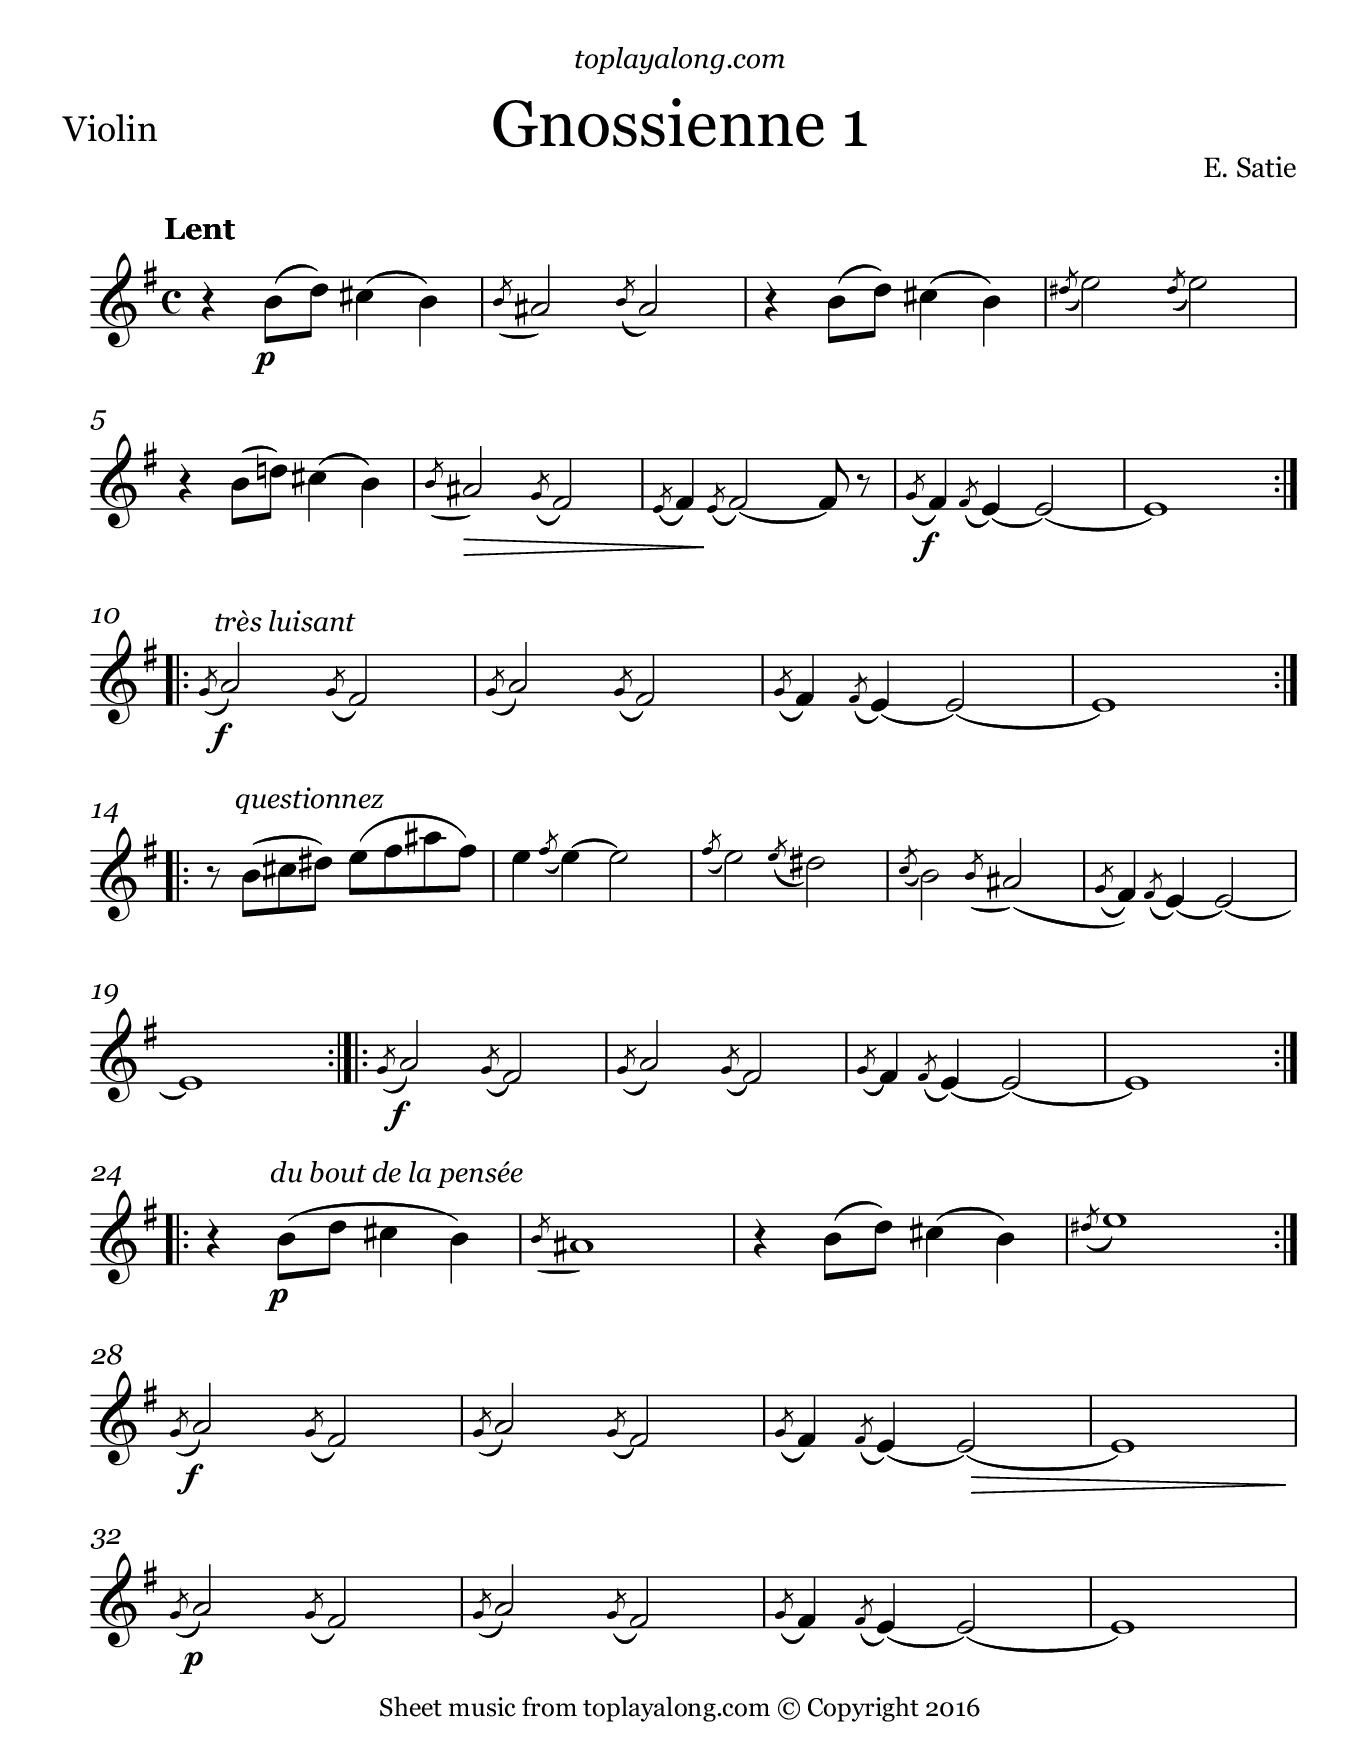 Gnossienne No. 1 by Satie. Sheet music for Violin, page 1.